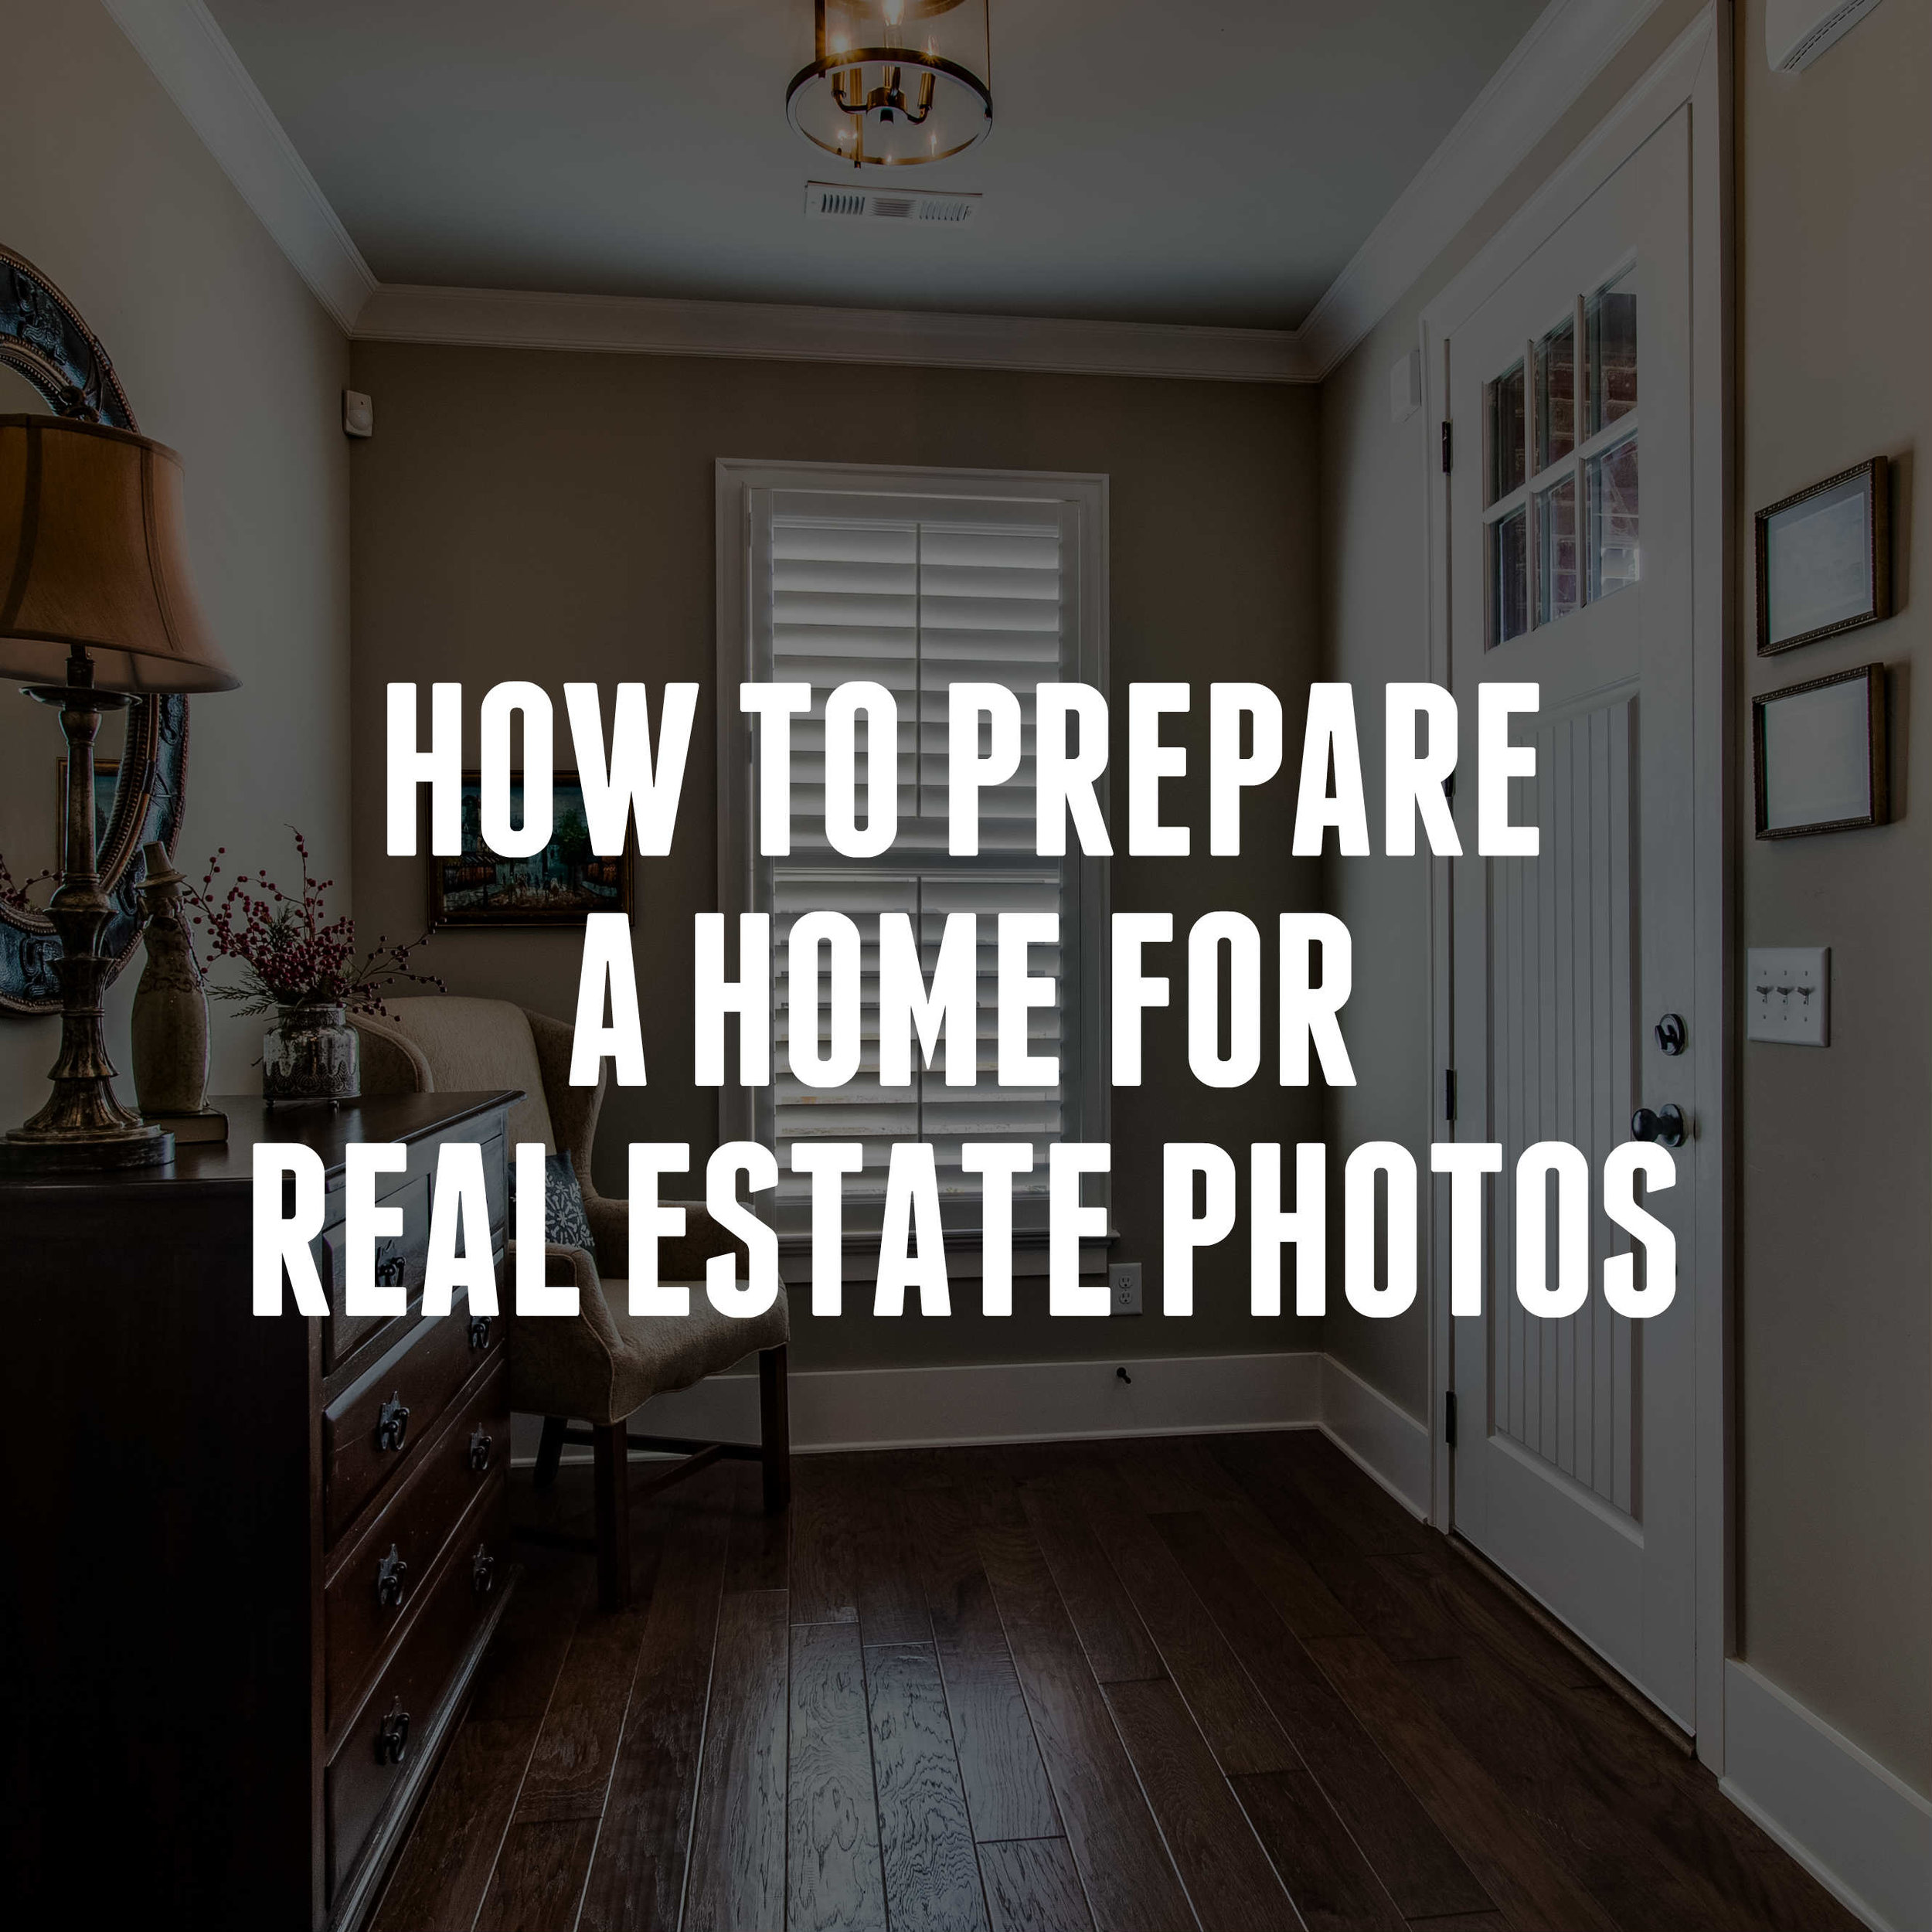 HOW TO PREPARE A HOME FOR REAL ESTATE PHOTOS